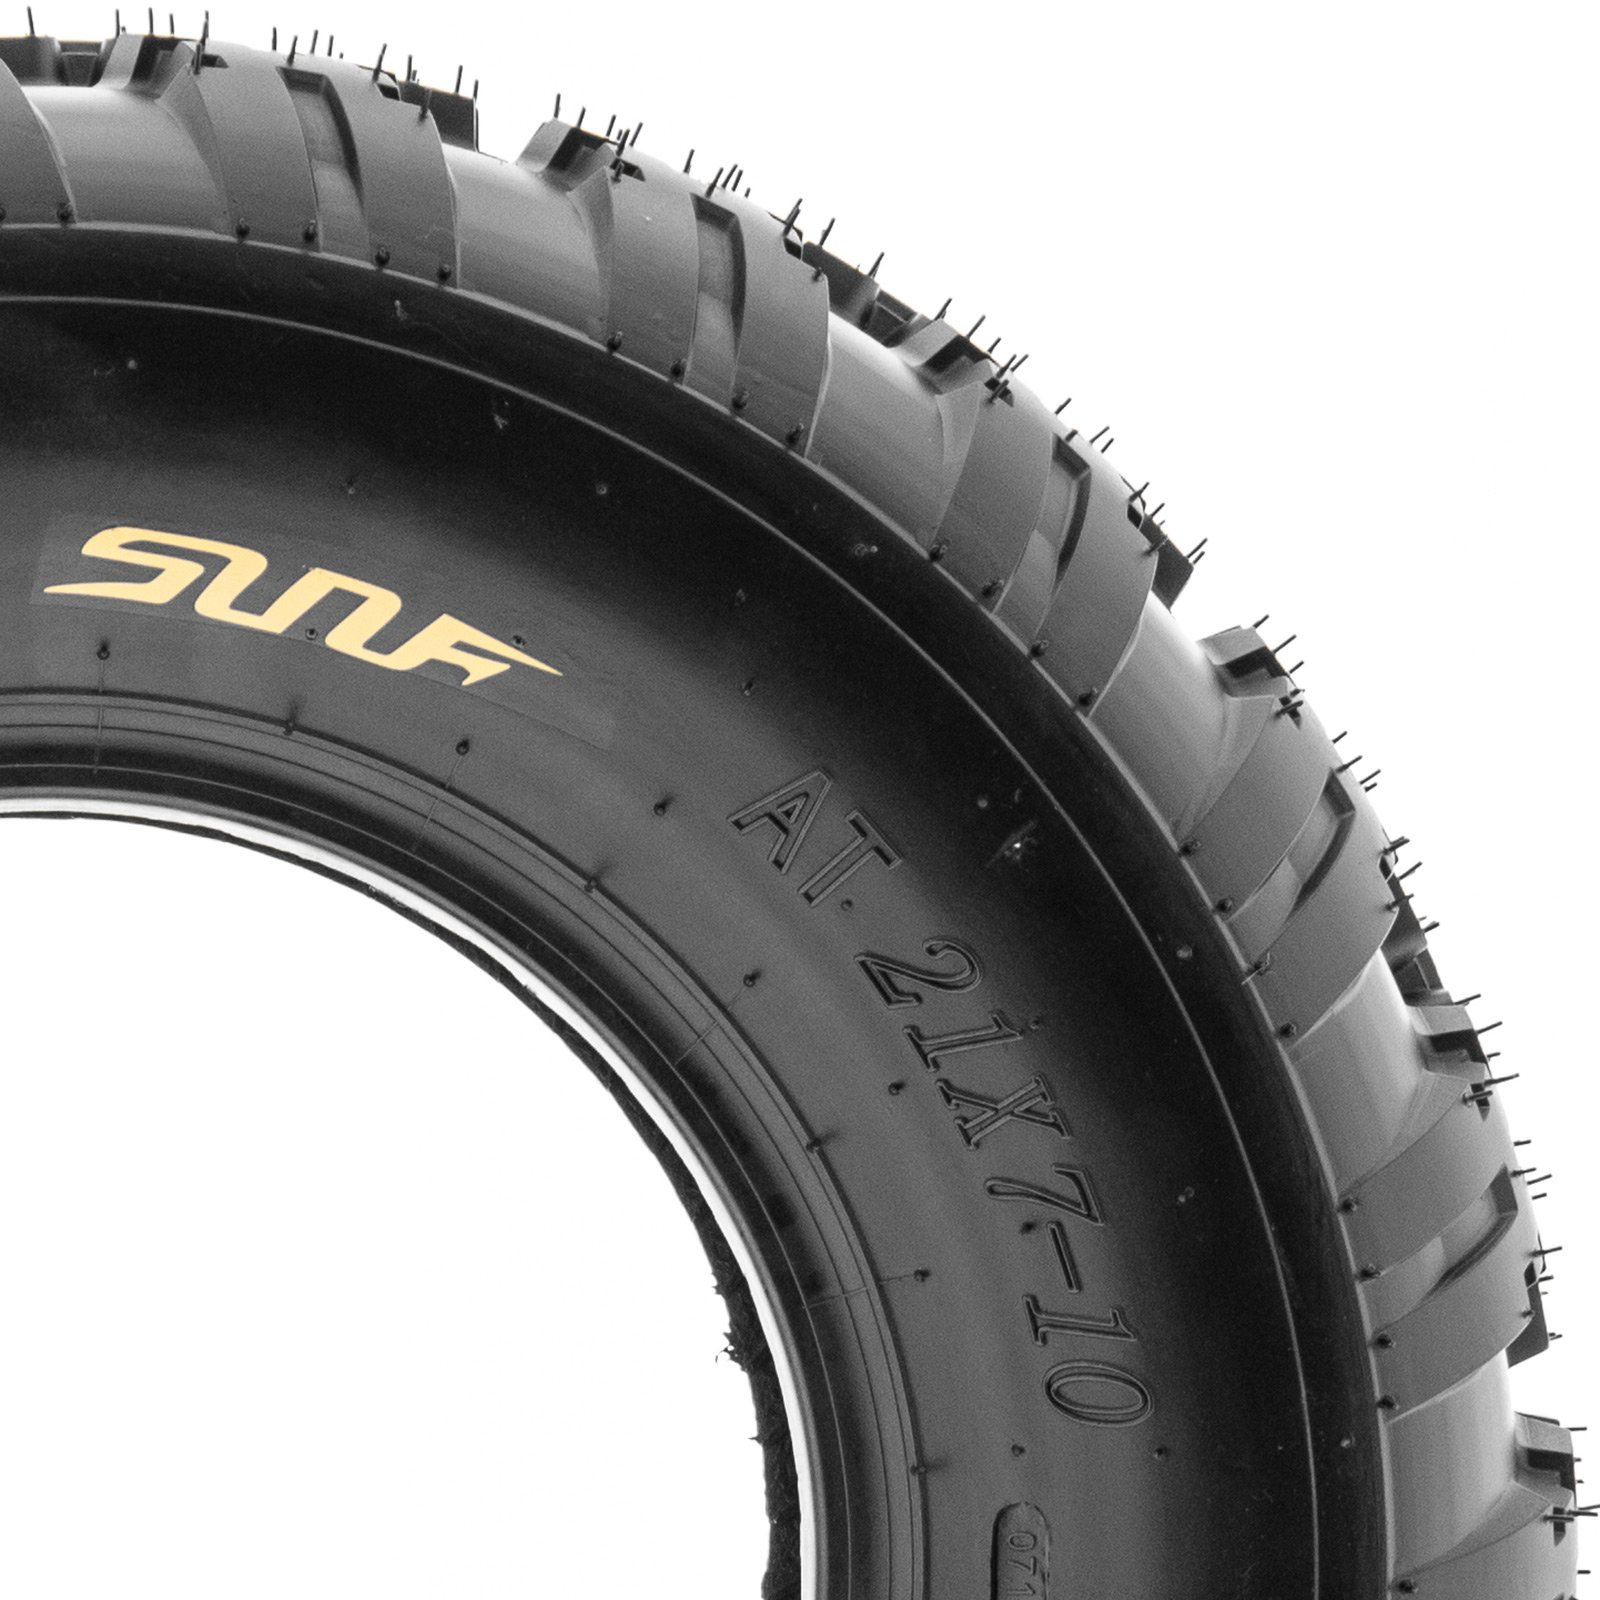 SunF Knobby Sport ATV Tires 20x6-10 & 18x10-8 4/6 PR A031 (Complete set of 4) by SunF (Image #6)